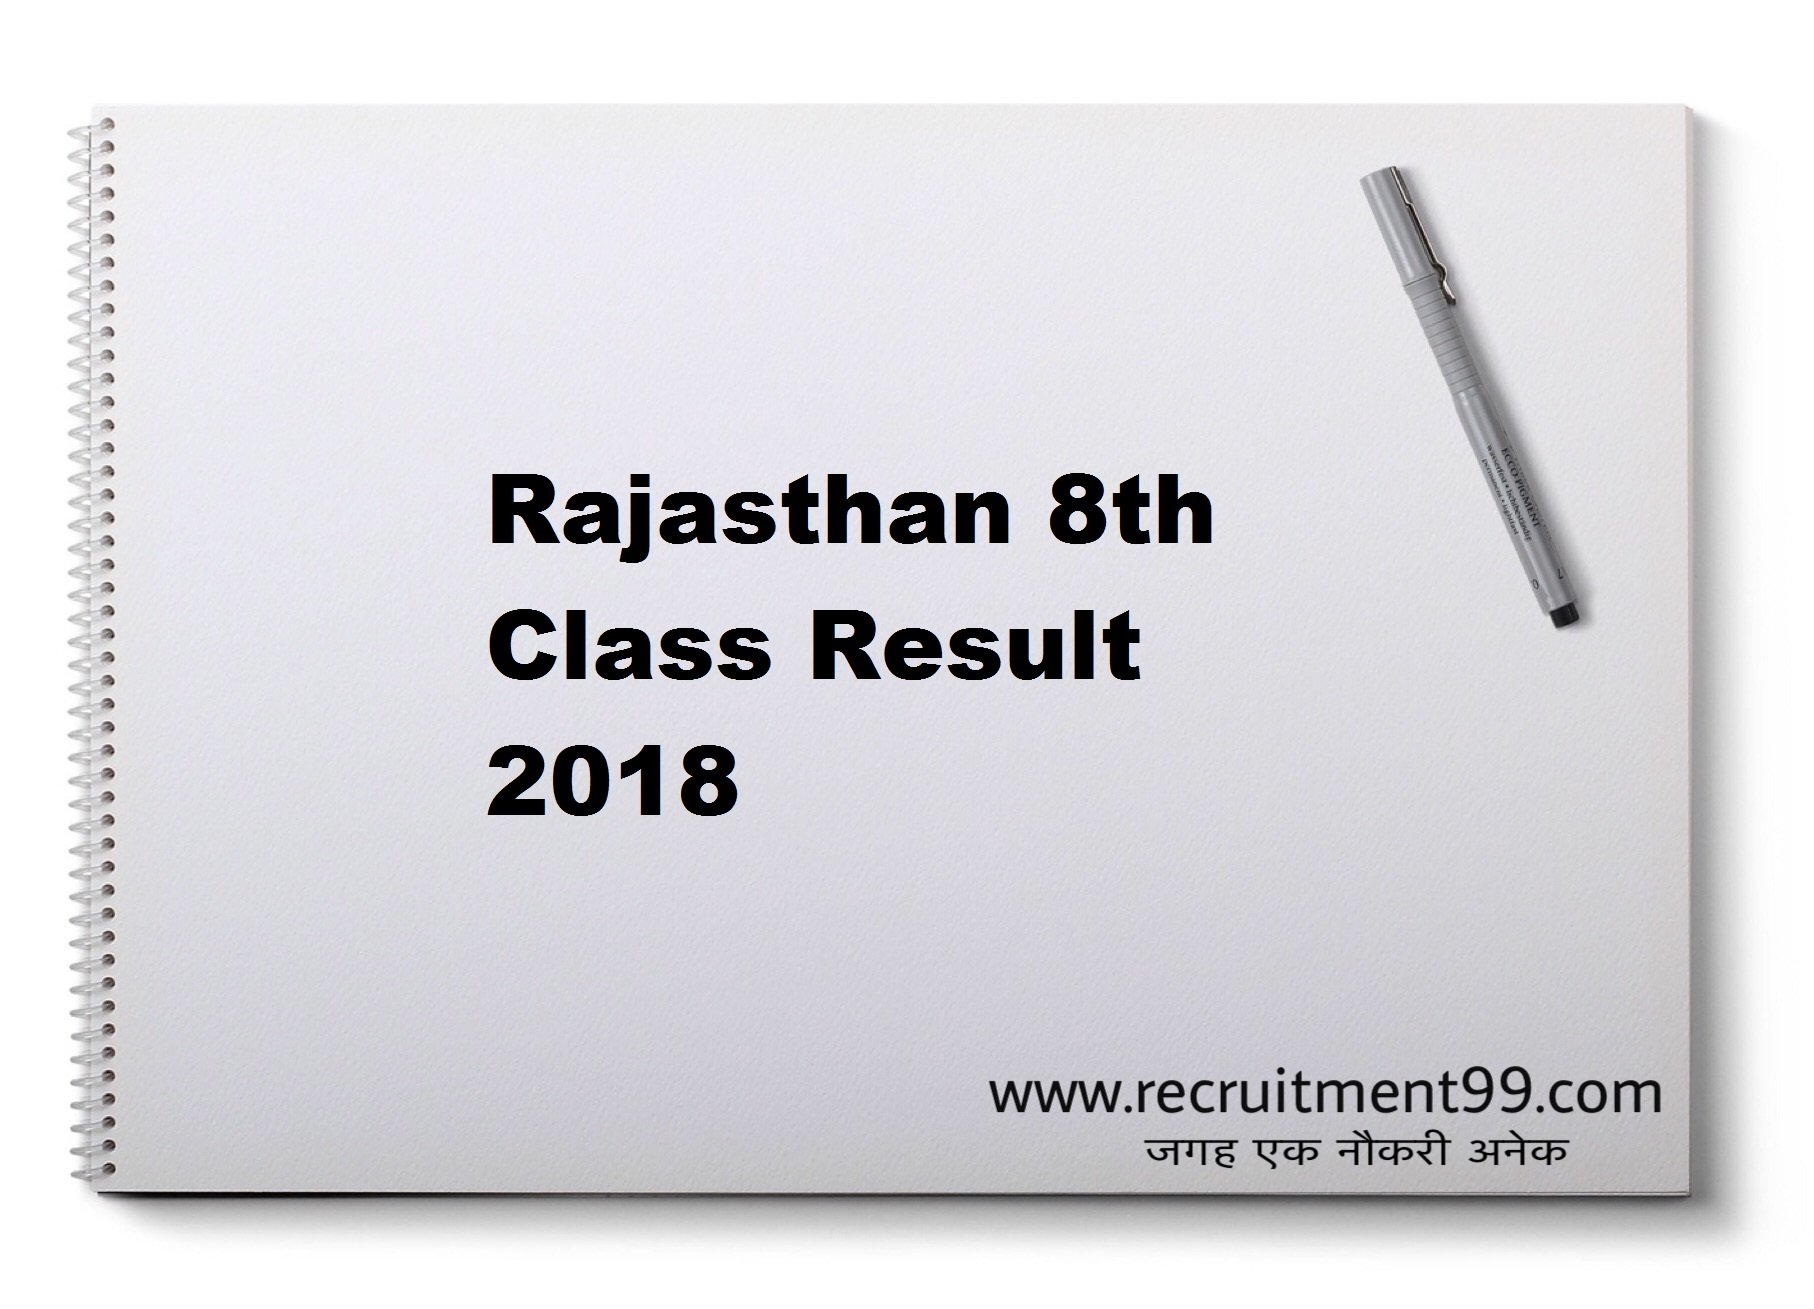 Rajasthan 8th Class Result 2018